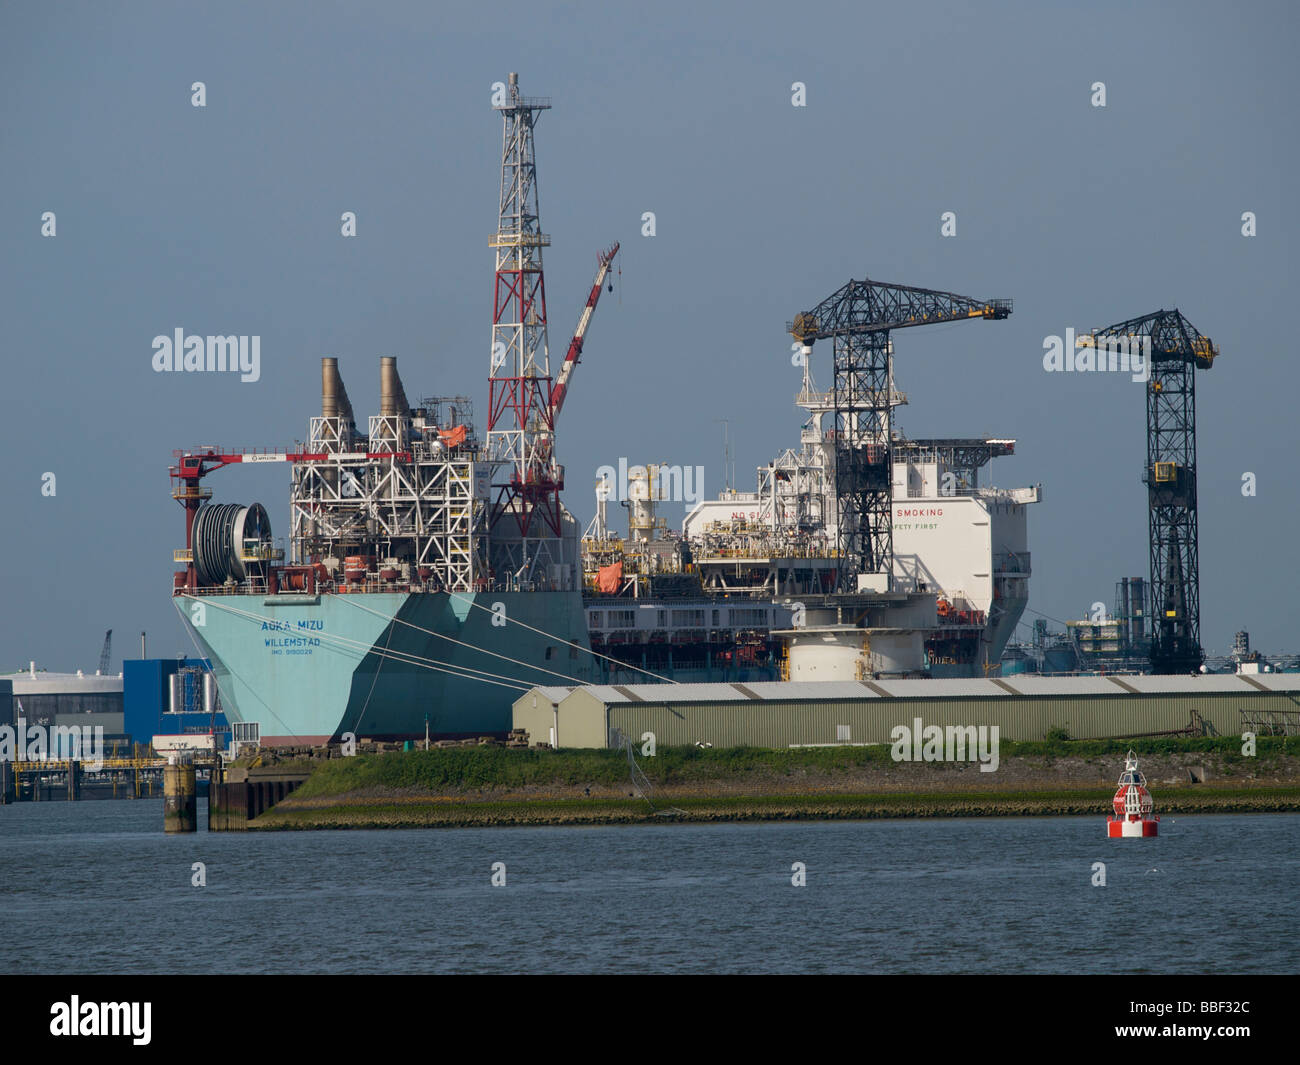 the Aoka Mizu is a purpose built production ship of 246m length a floating oil production platform. Rotterdam port, Netherlands Stock Photo